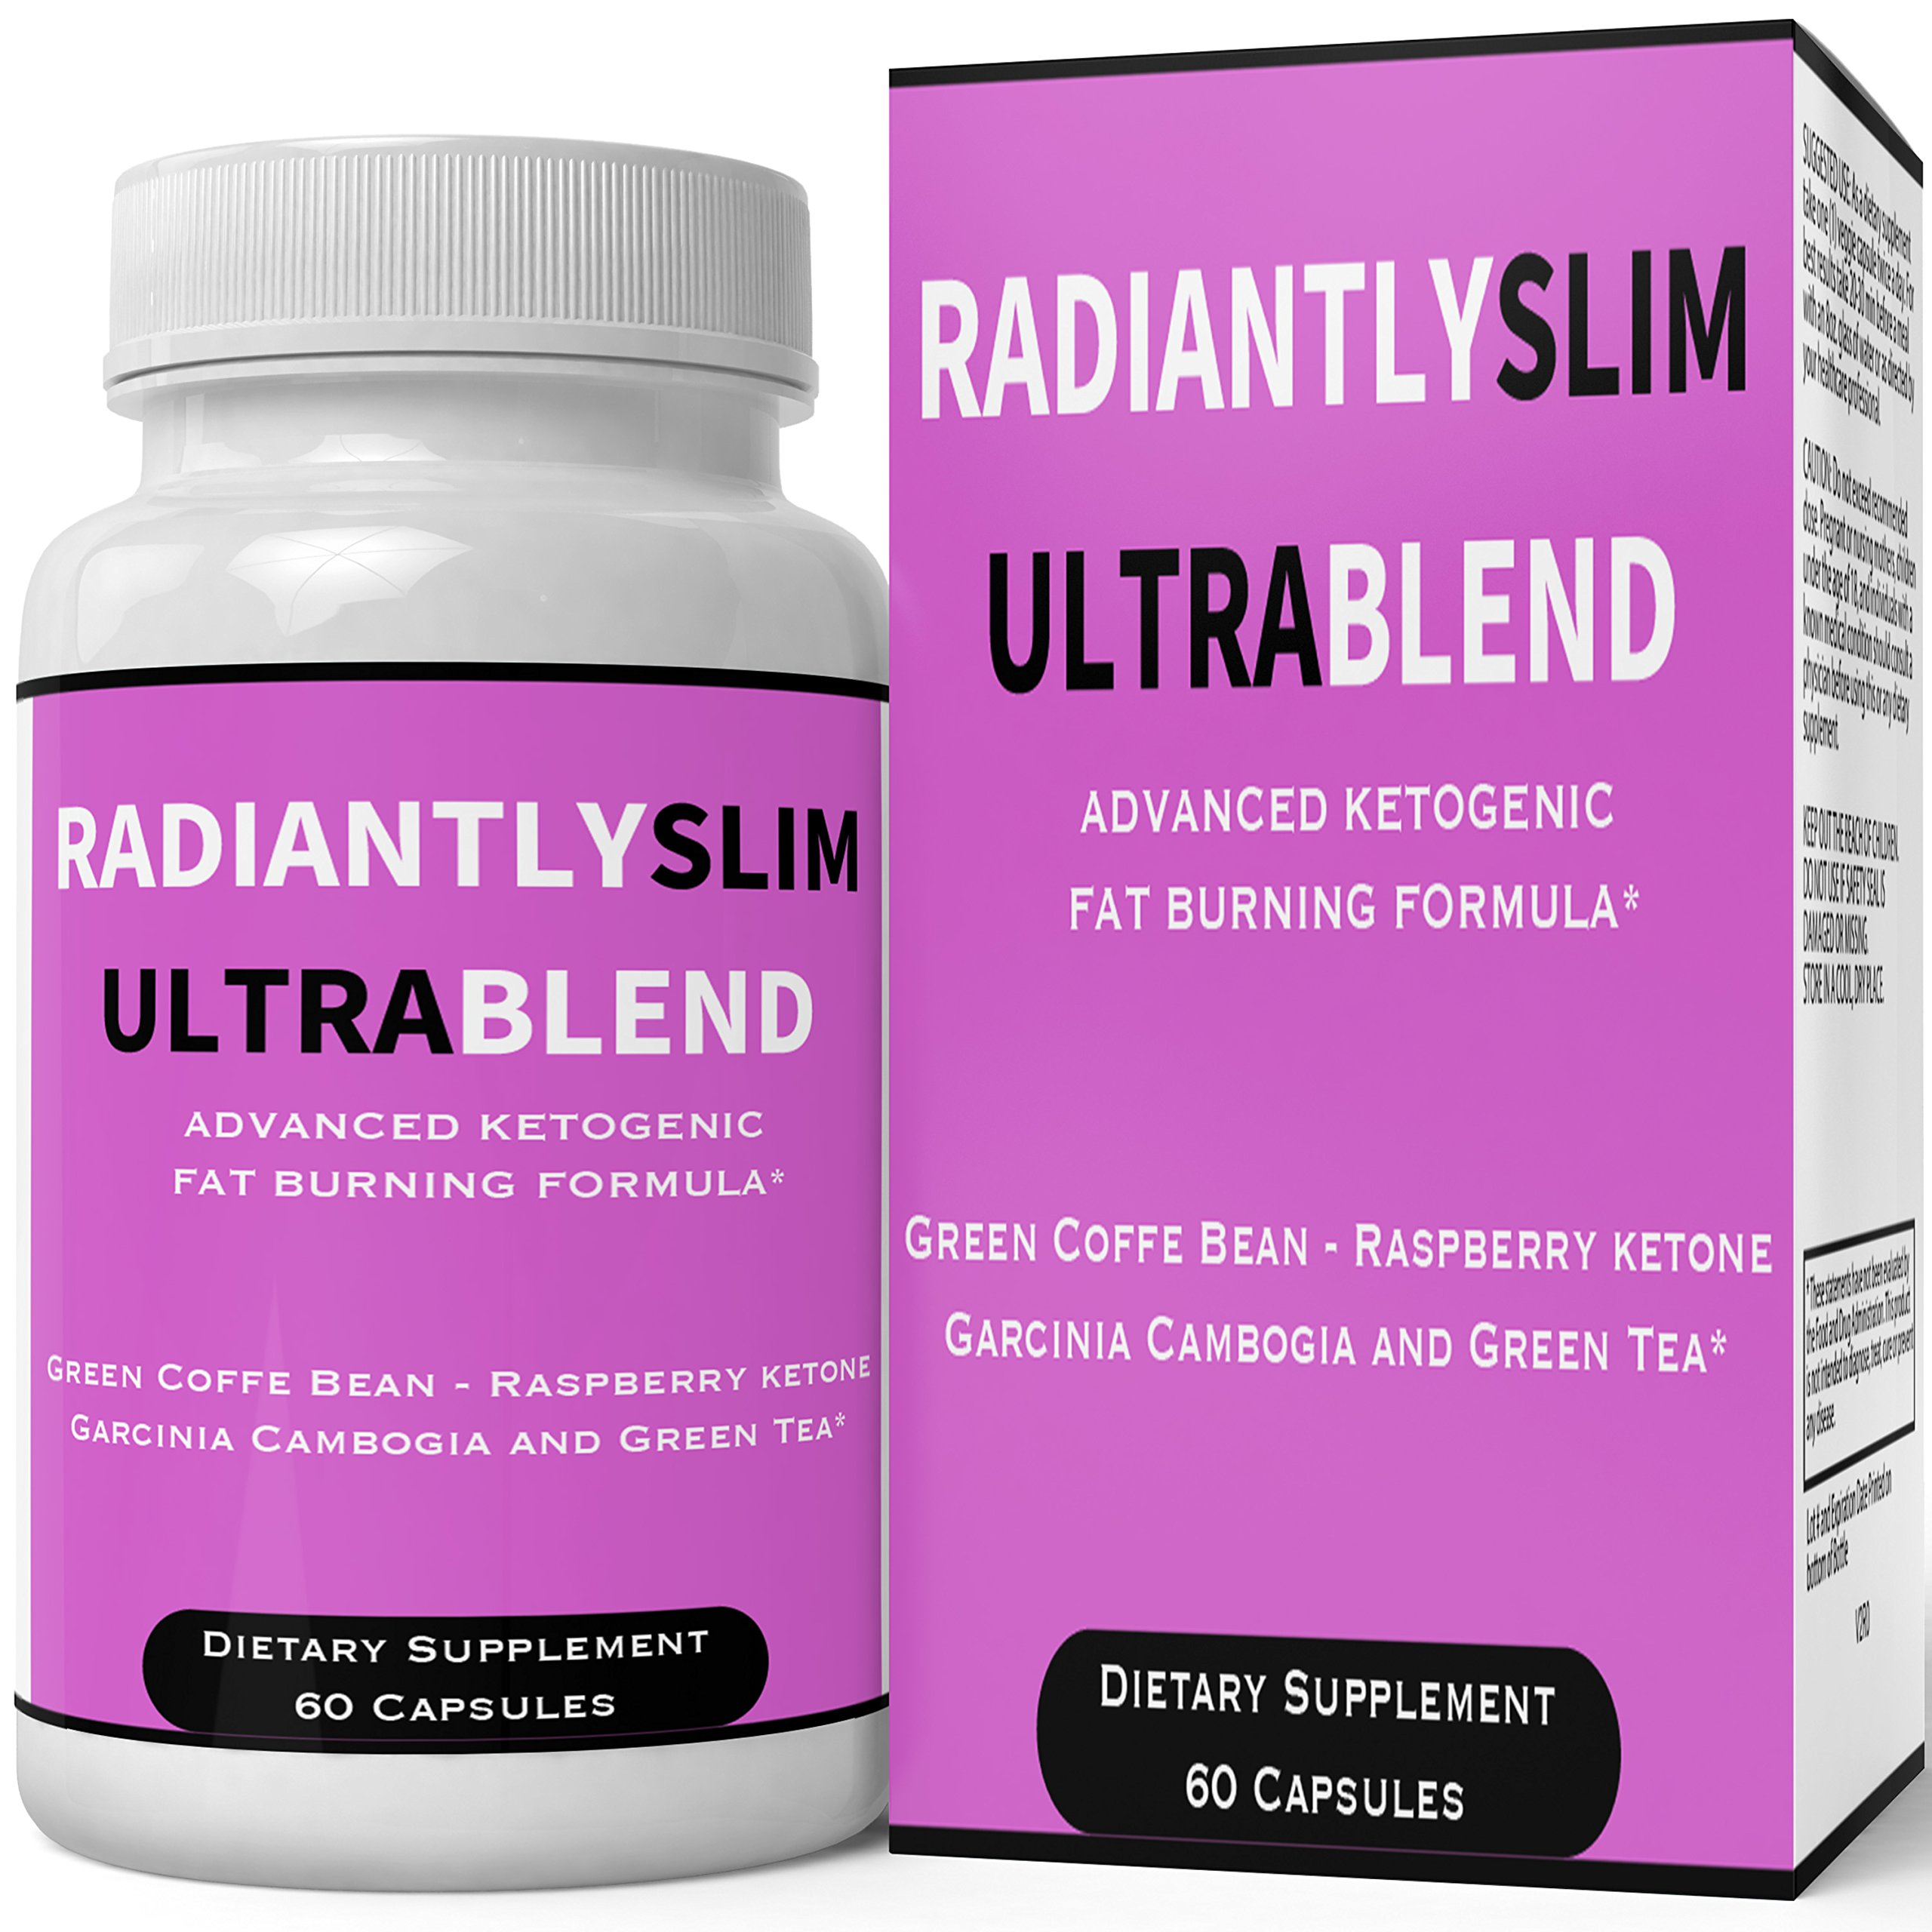 Radiantly Slim Ultra Blend Pills Weight Loss Supplement - Extreme Weightloss Lean Fat Burner | Advanced Thermogenic Fat Loss Formula Pastillas for Women Men Natural Original by nutra4health Brand by nutra4health LLC